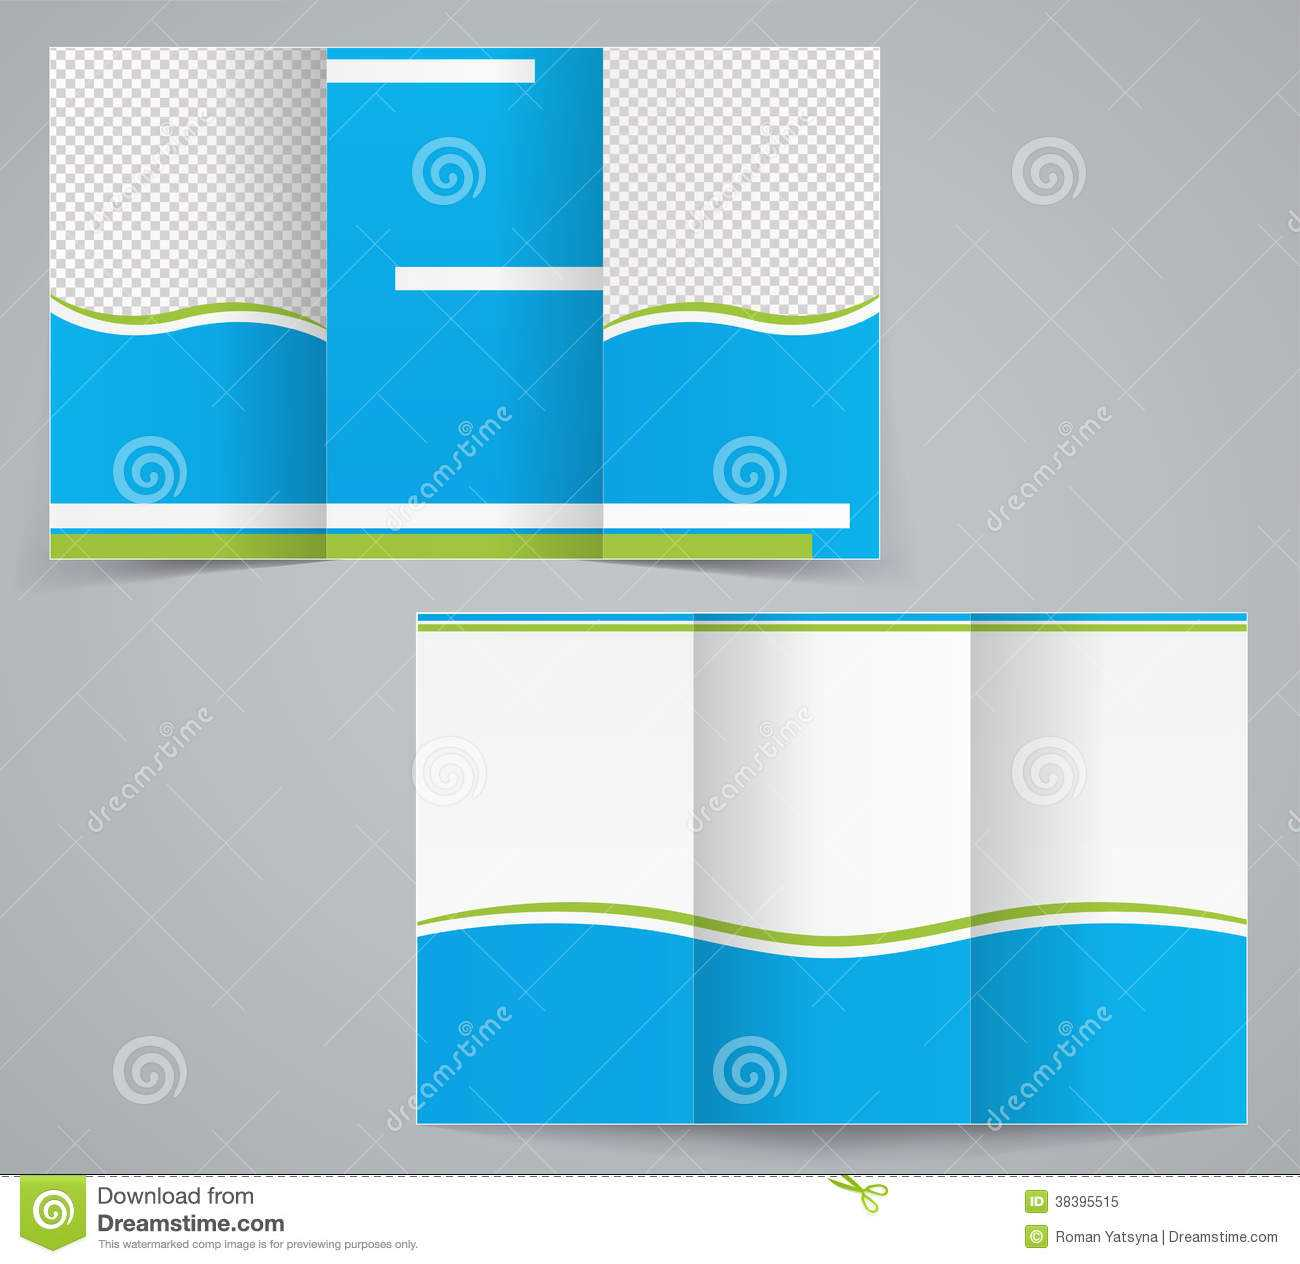 Tri Fold Business Brochure Template, Blue Design Stock Within 6 Sided Brochure Template